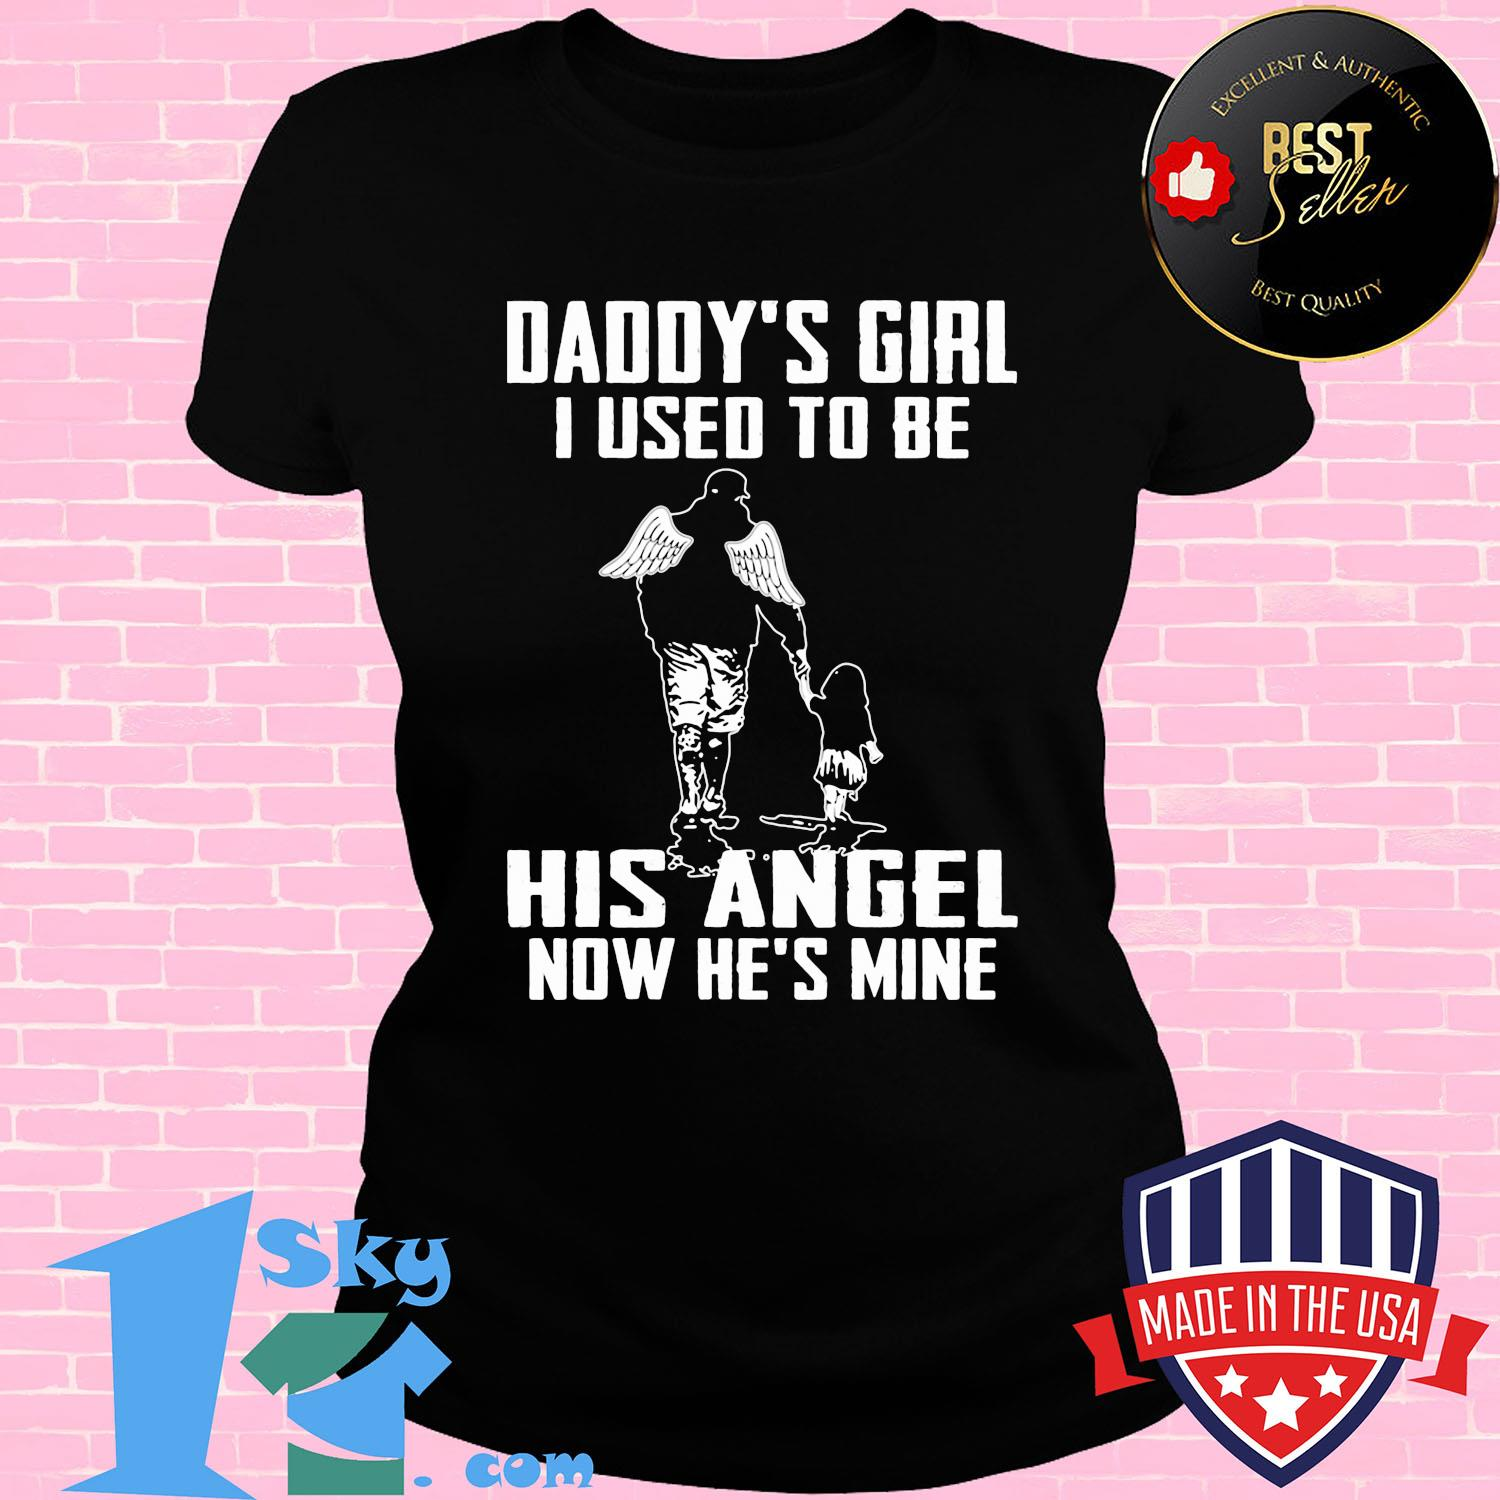 Daddys girl i used to be his angel now he is mine happy fathers day shirt